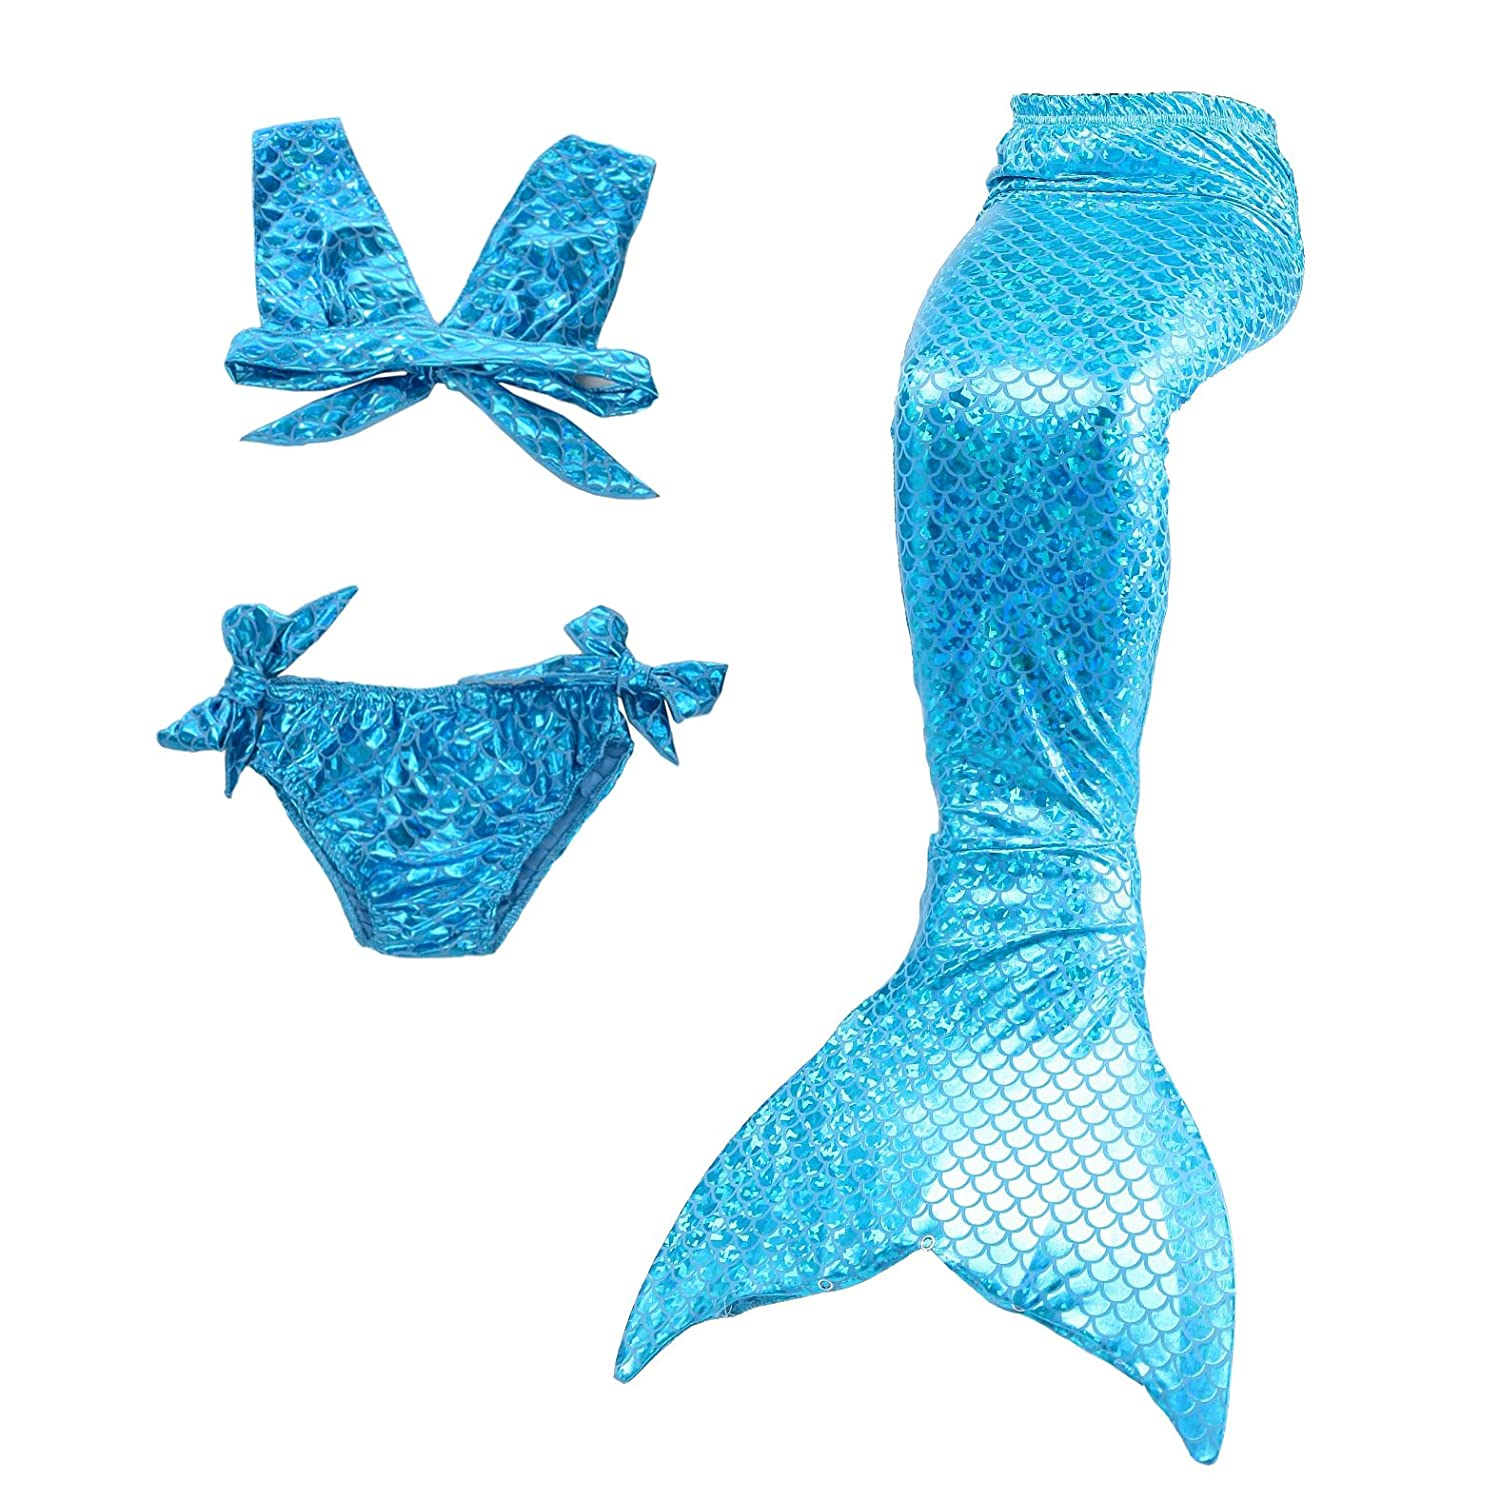 9f60e7ff0948a This beautiful 3-pieced mermaid swimwear is featured with stretchy material  printed with shimmery fish scales pattern. Set includes a top, a bikini  brief, ...